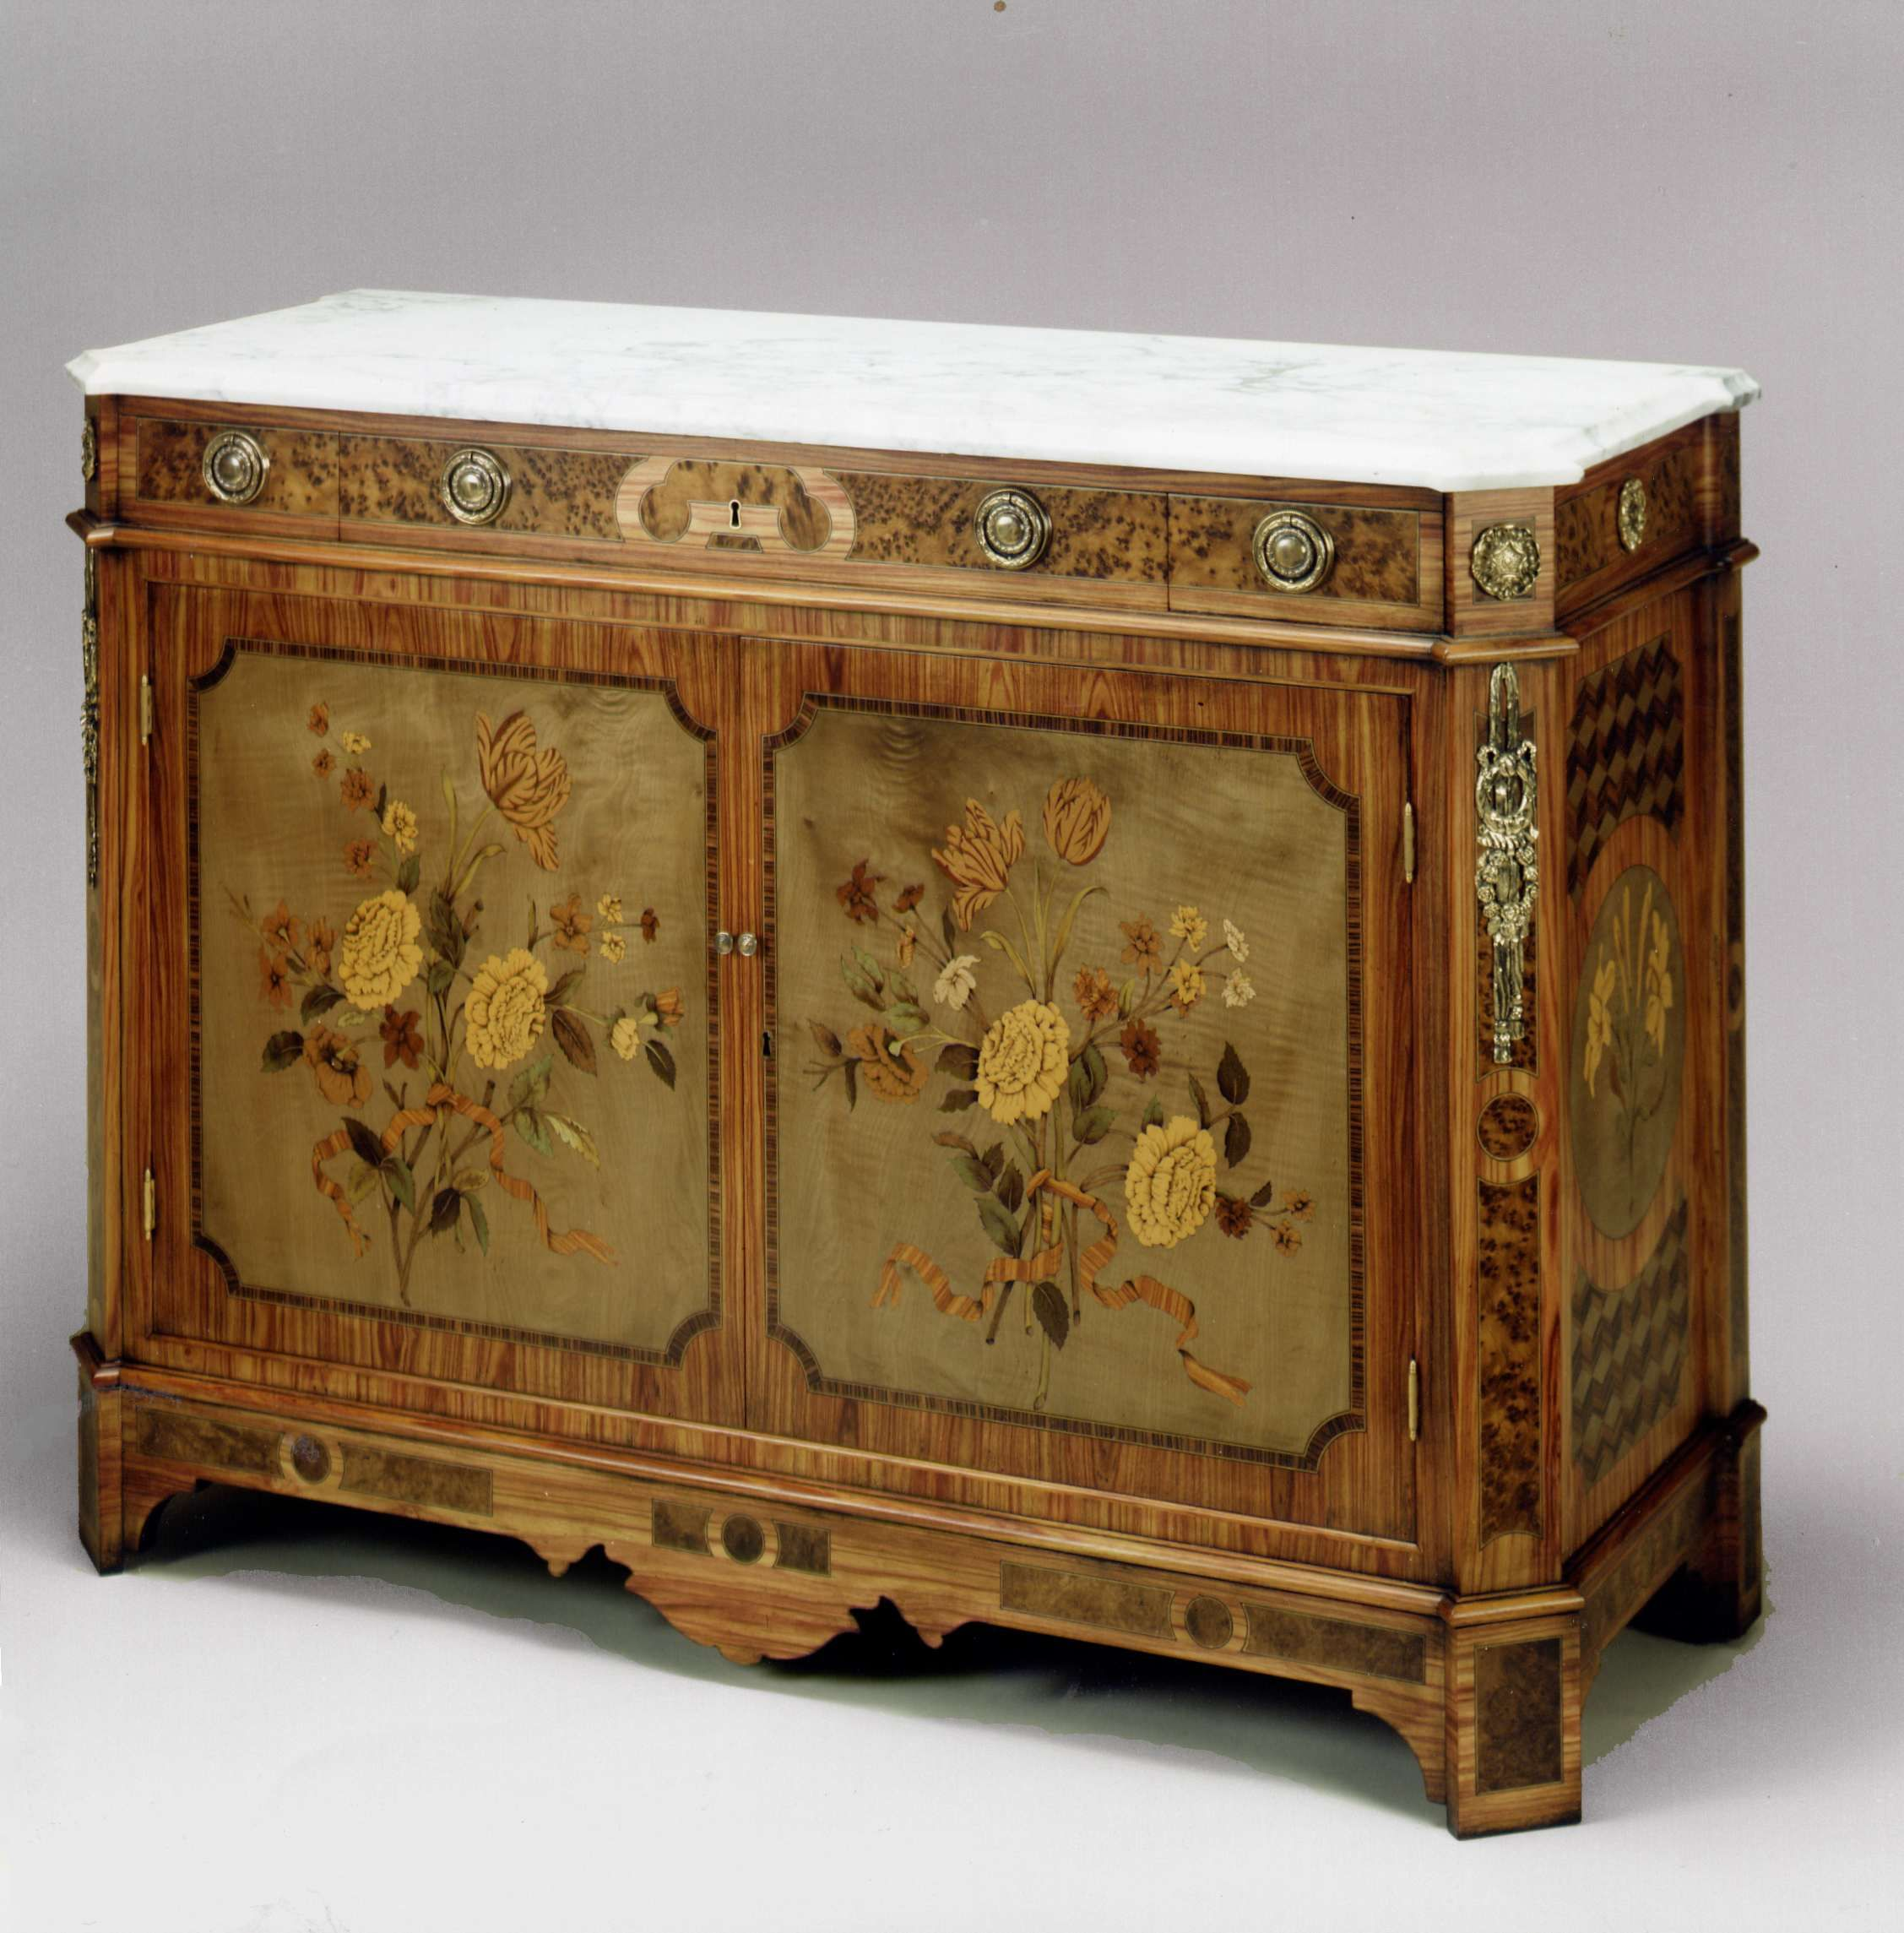 Muebles Italianos Clasicos Tulipwood And Marquetry Cabinet Copied From A Bibliotheque